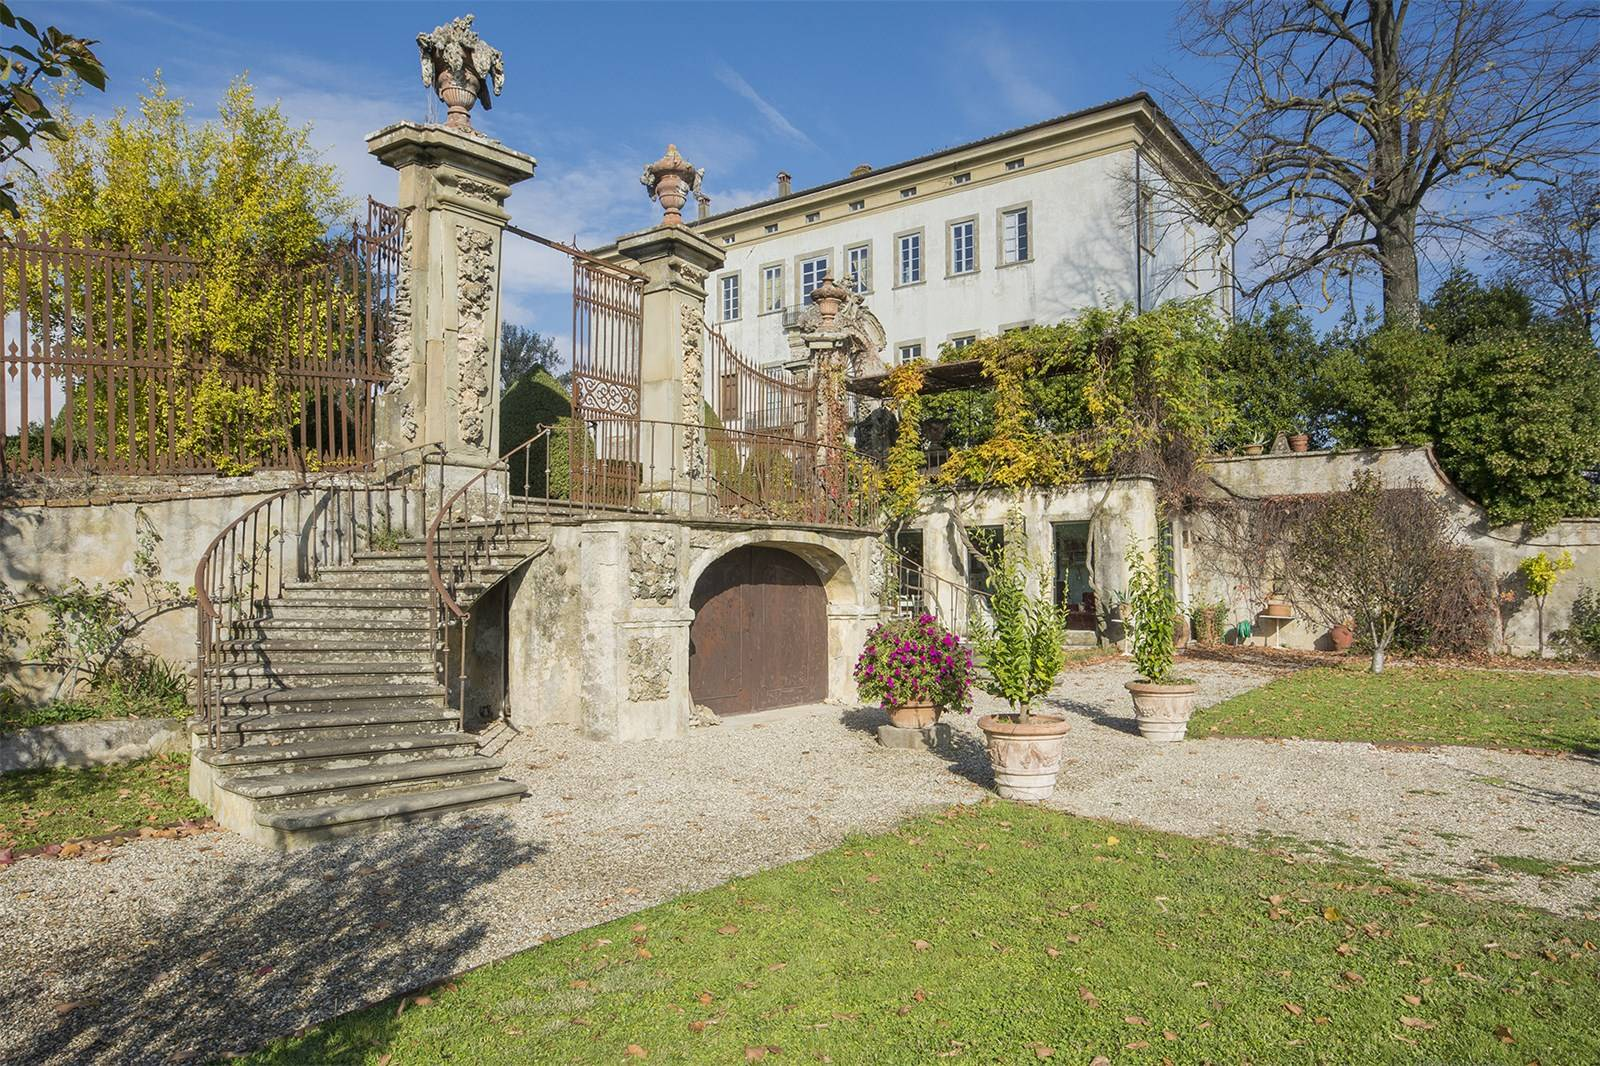 italian, villa, italy, mansion, garden, gate, house, home, gorgeous, fresco, florence, apartment, for sale, real estate, rental, income, property, potential, renovate, opulent, marble, stone, windows, trees, grass